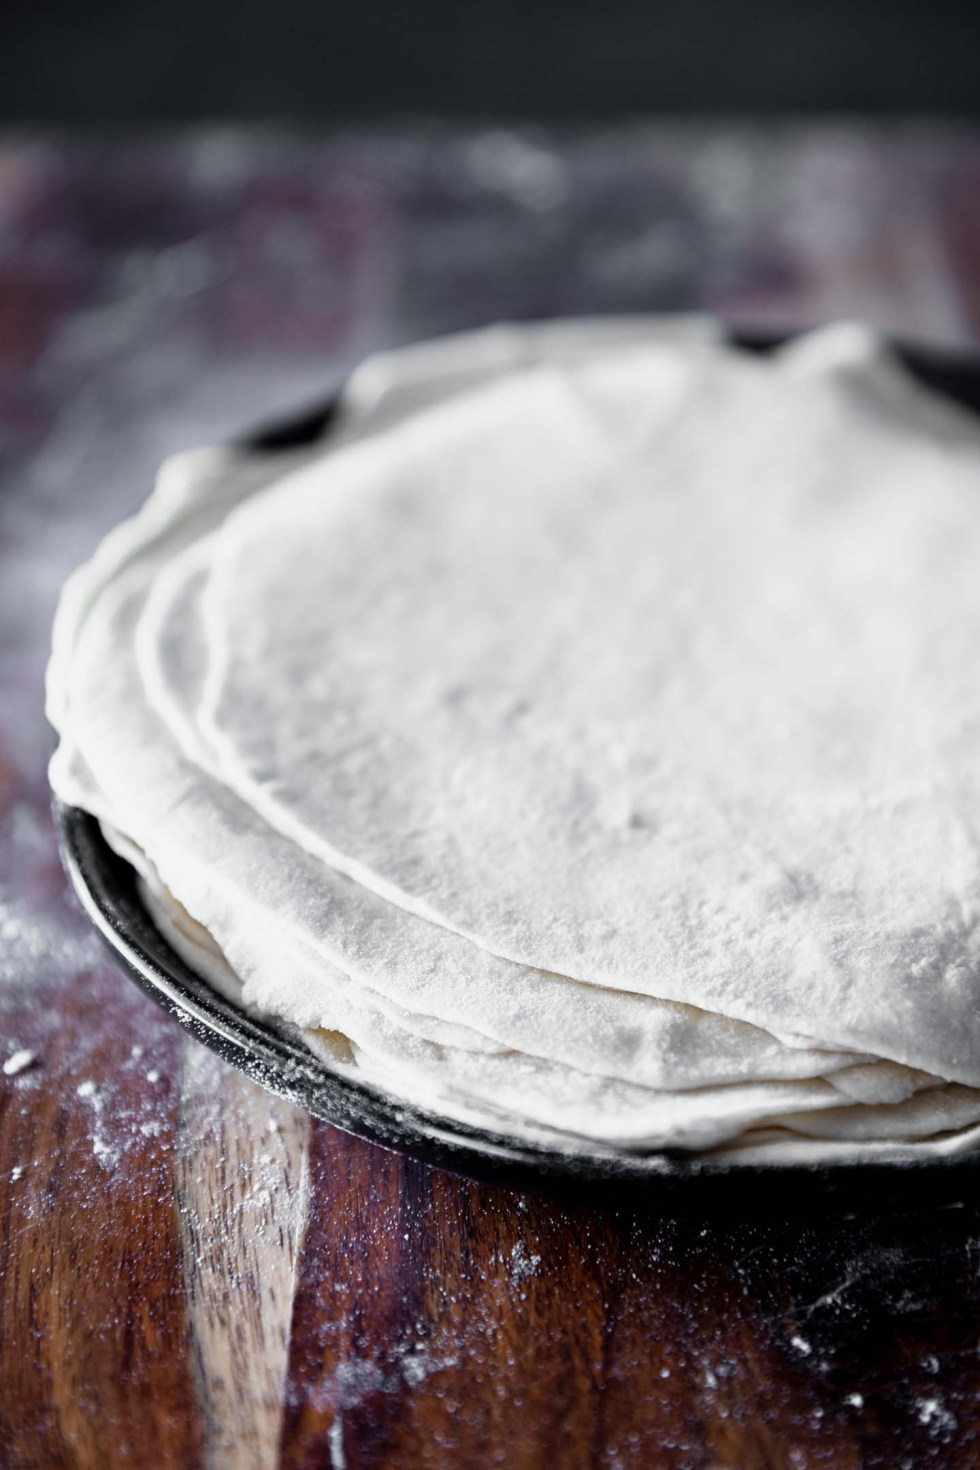 A stack of well-floured tortillas ready to be cooked.